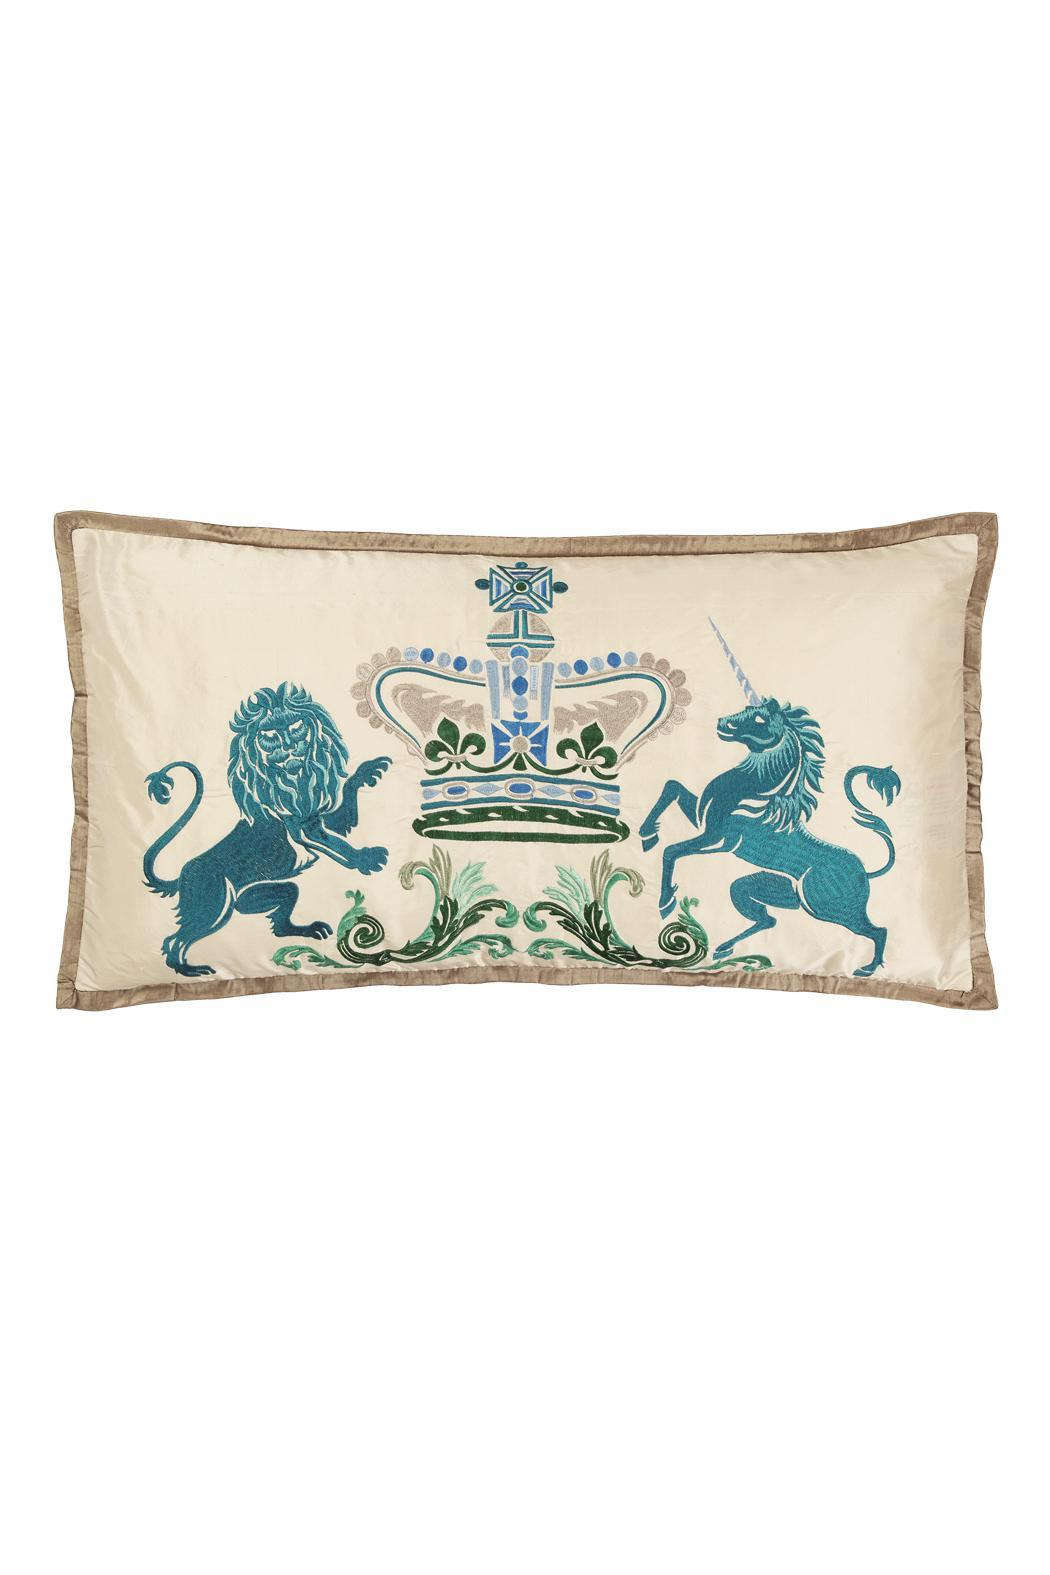 Designers Guild Coat Arms Pillow From Palm Beach By Petite